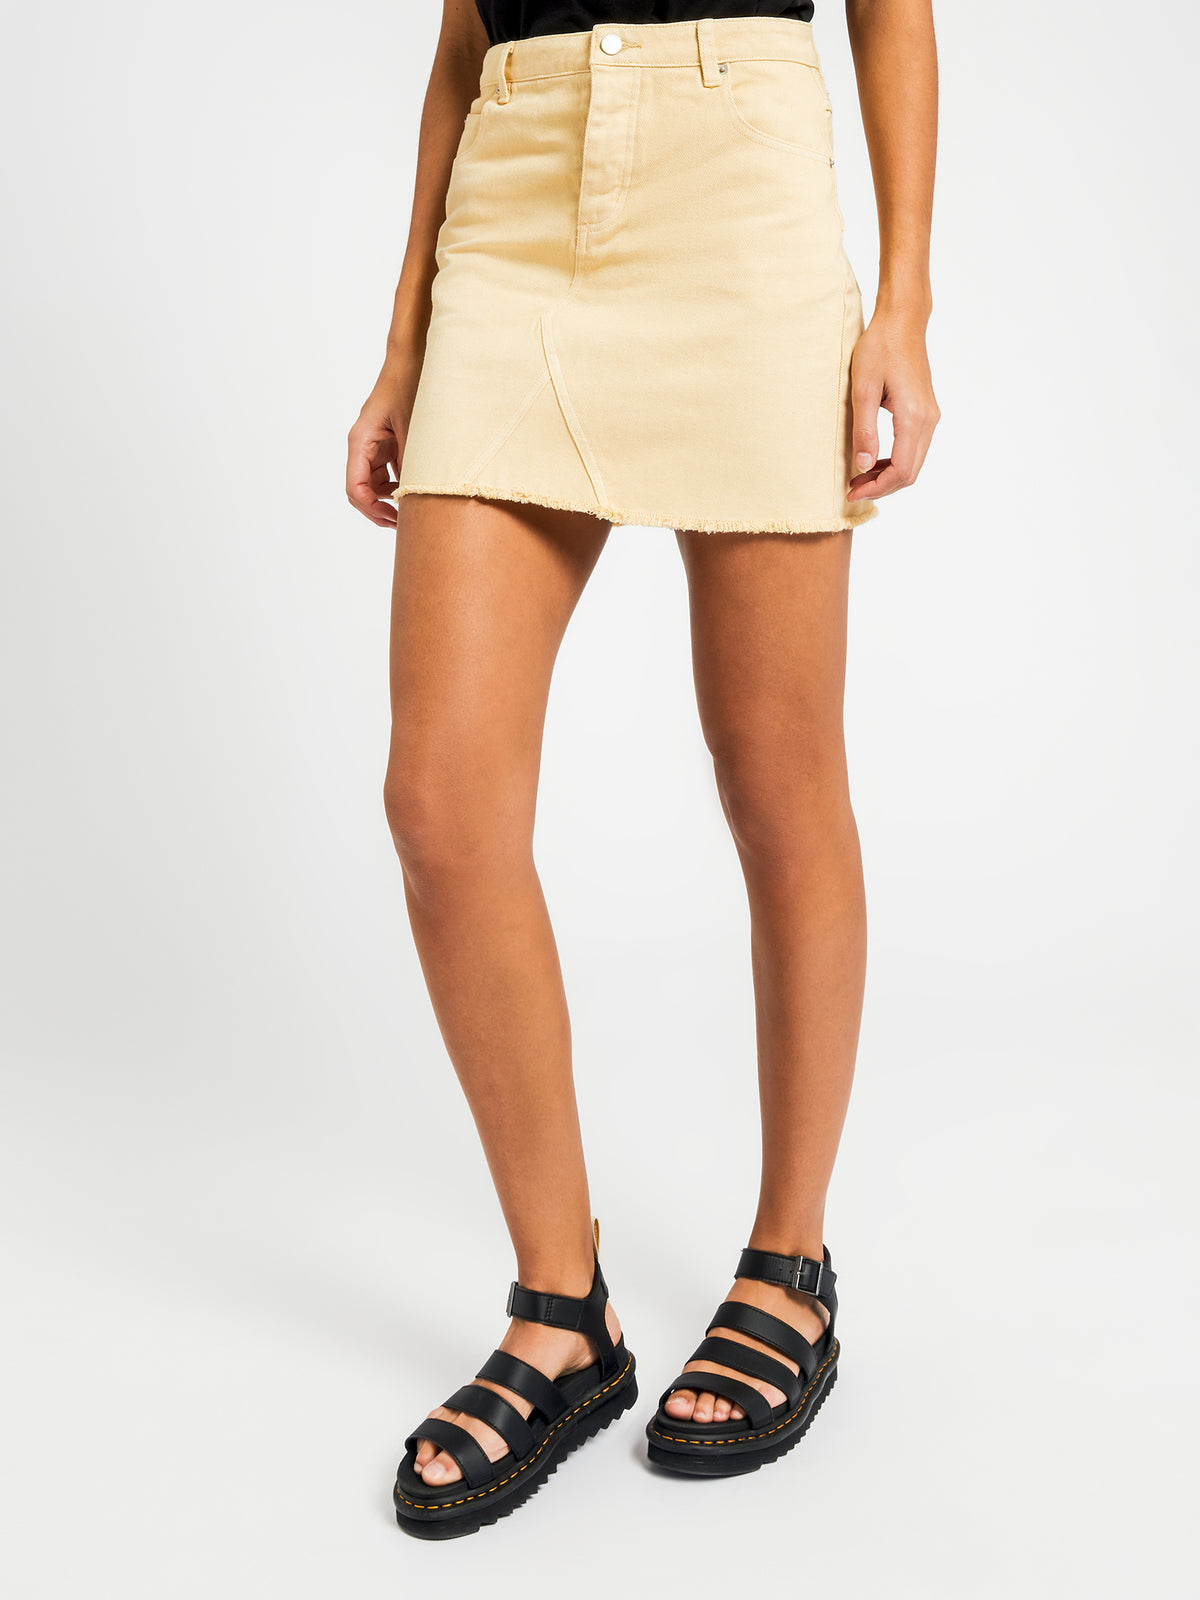 Brunswick Denim Skirt in Lemon